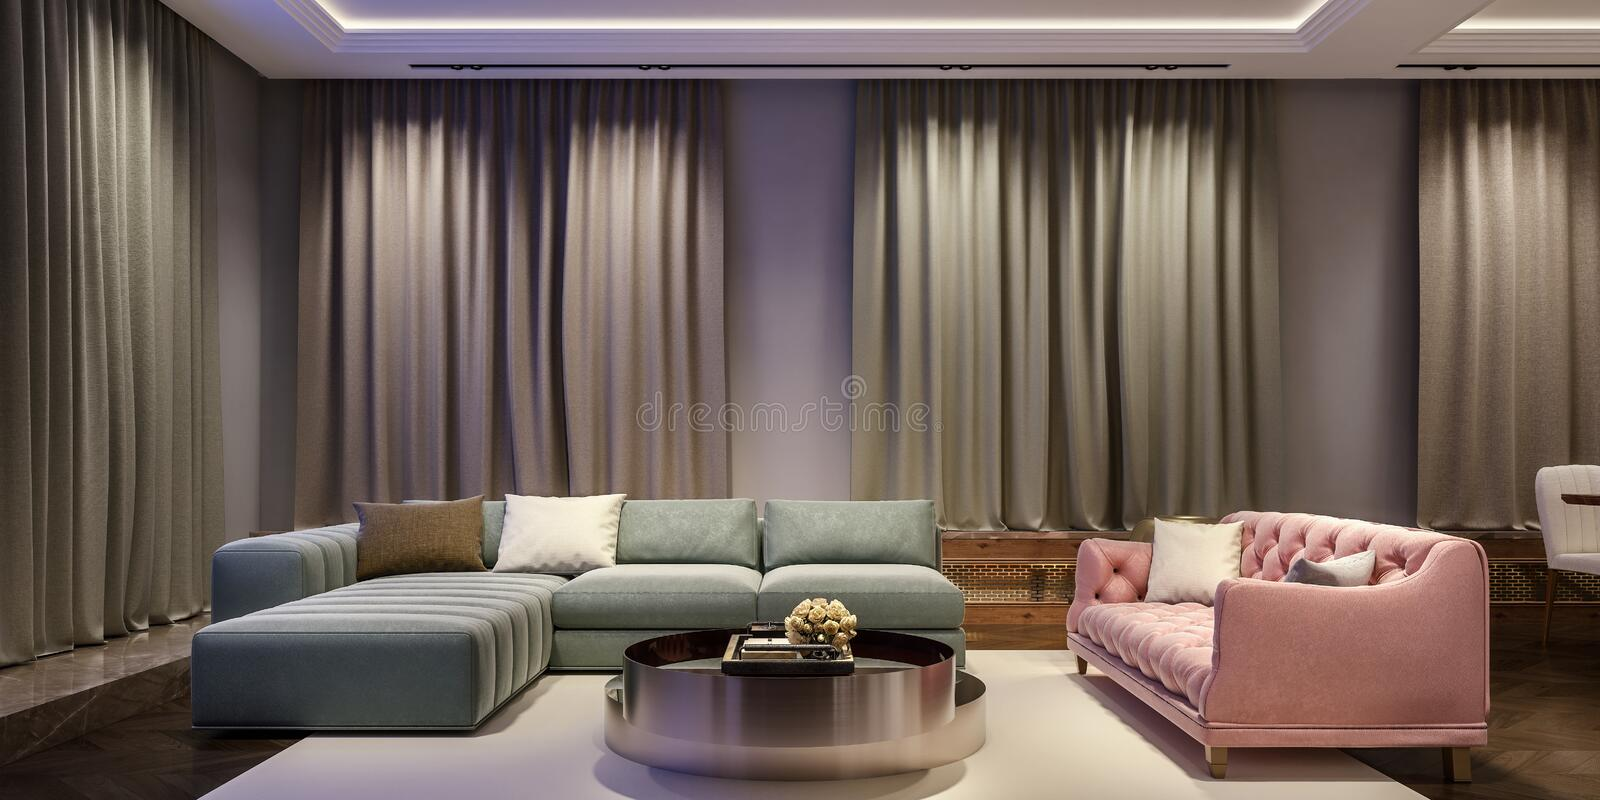 Modern interior design of living room, night scene with contrasting colors, millennial pink couch with complementary green sofa royalty free stock photos